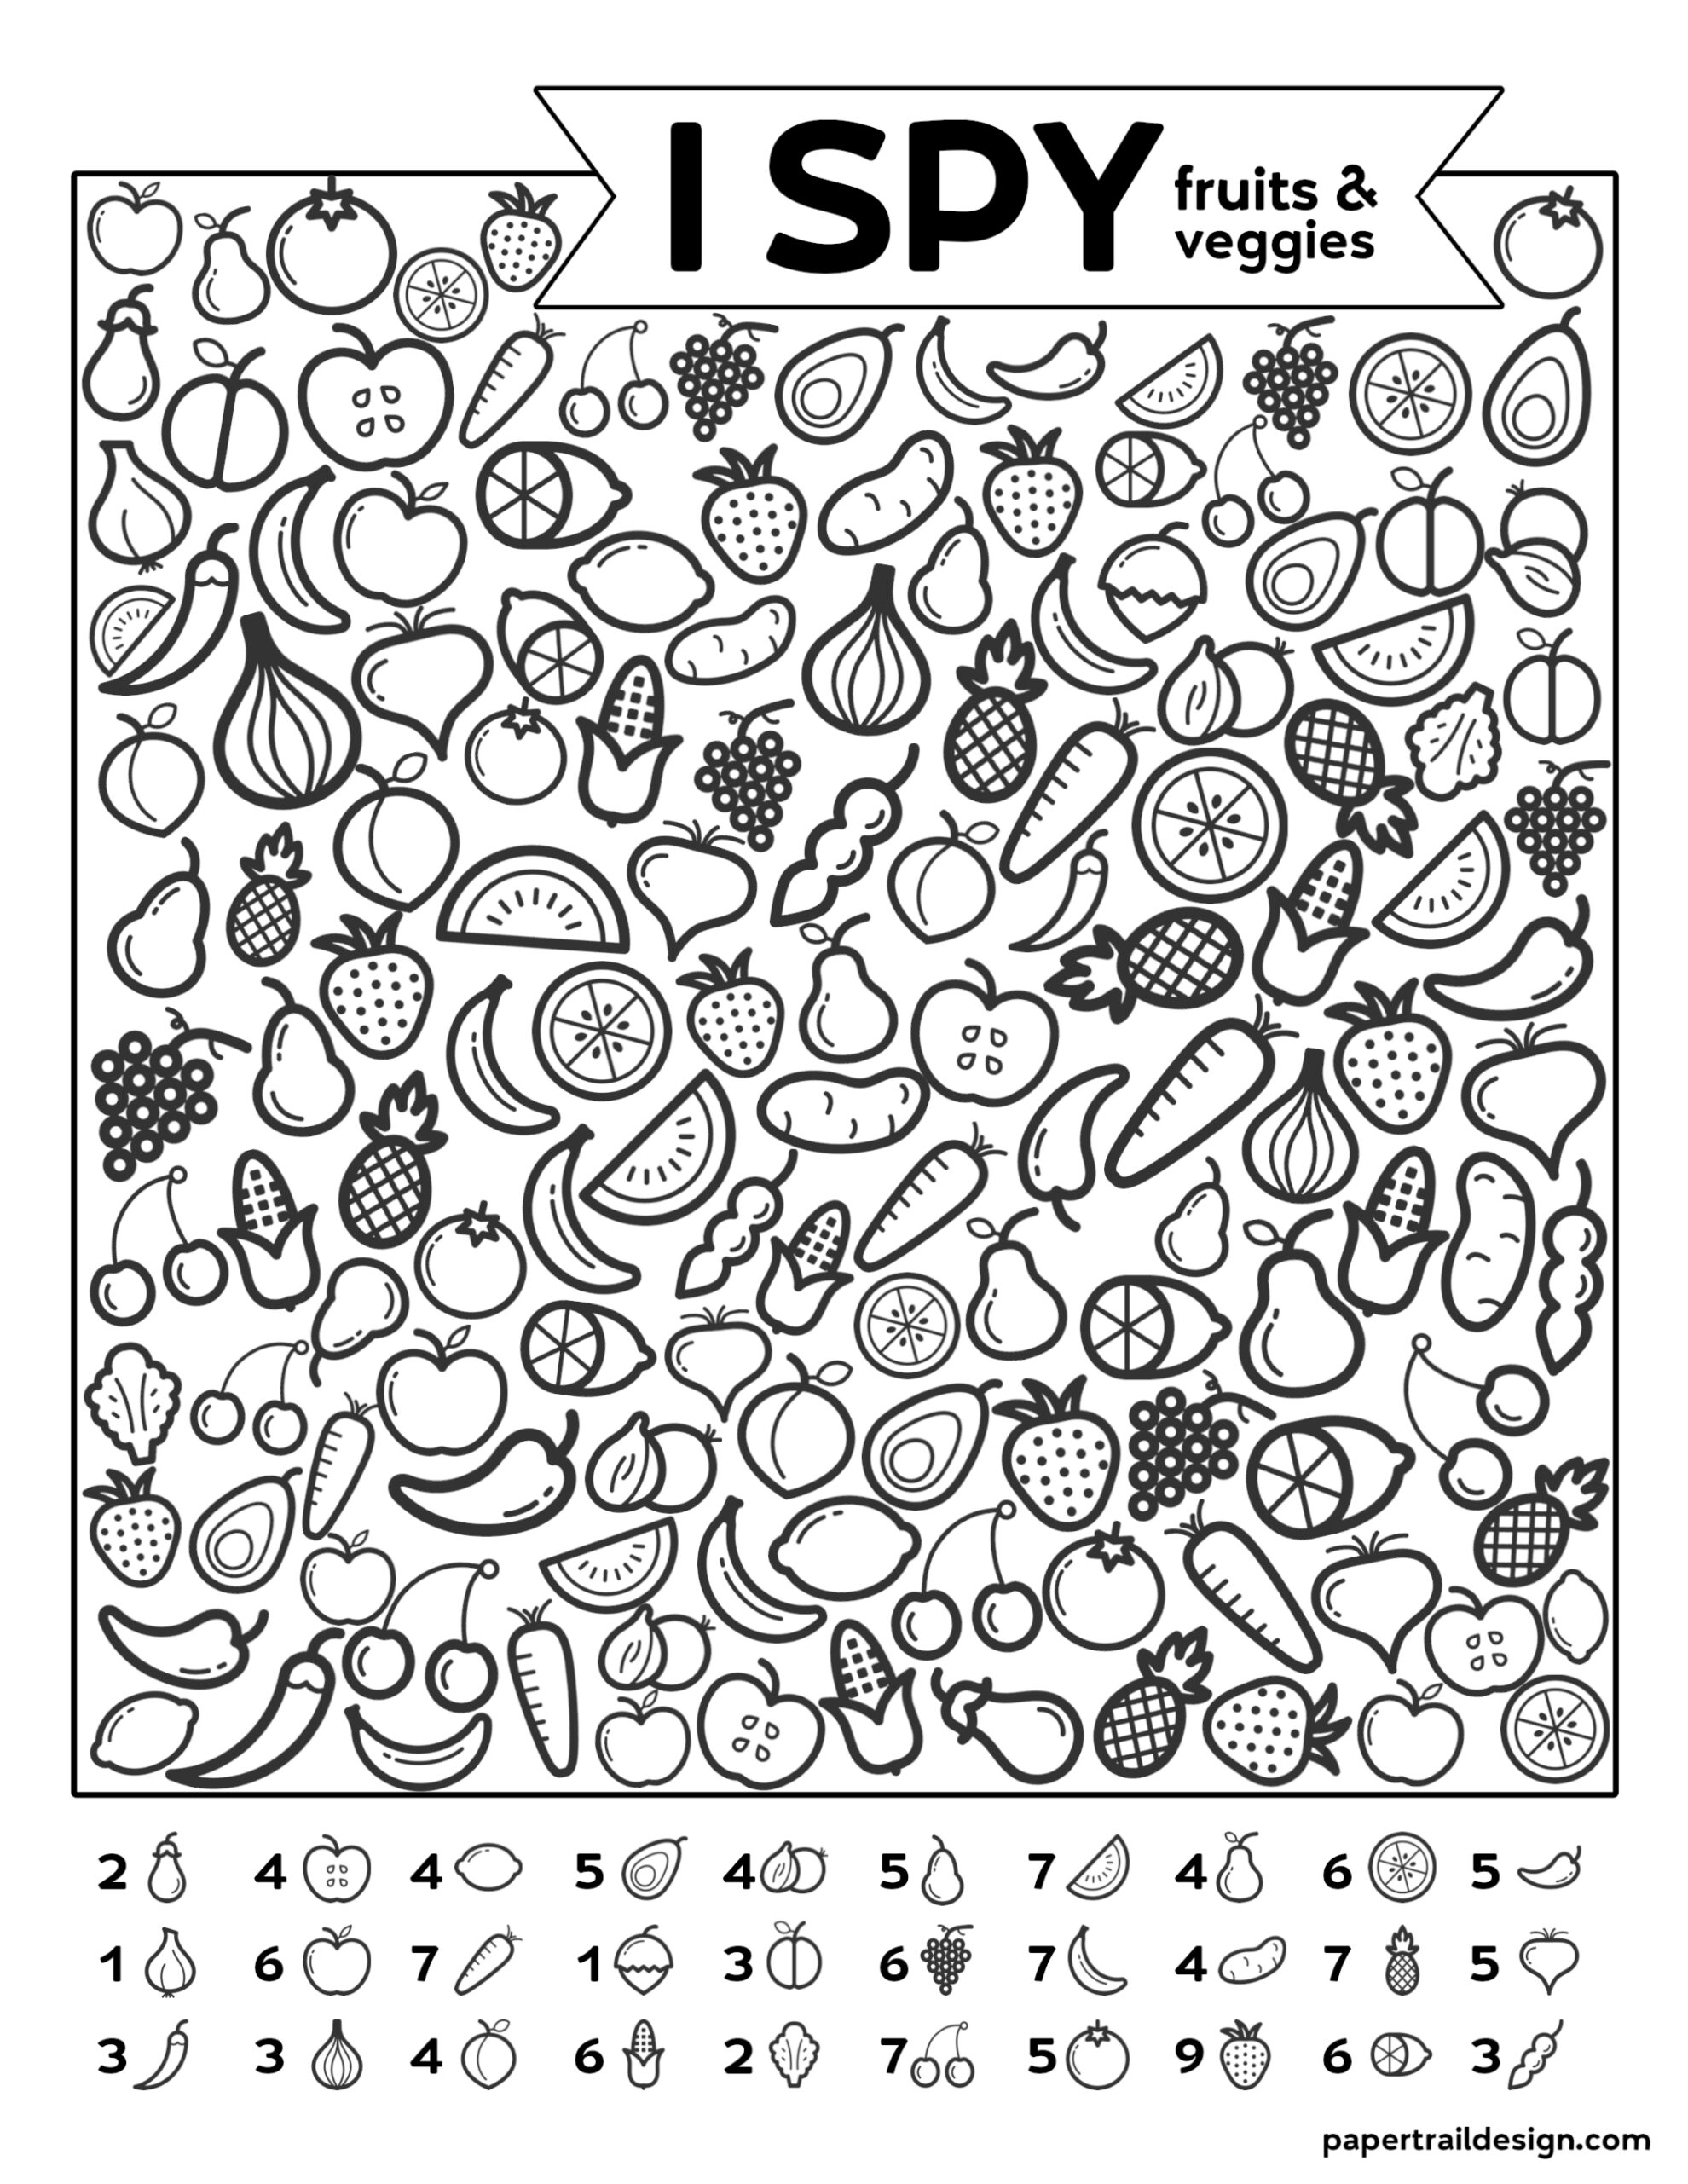 photo about I Spy Printable referred to as Totally free Printable I Spy Activity - End result Greens - Paper Path